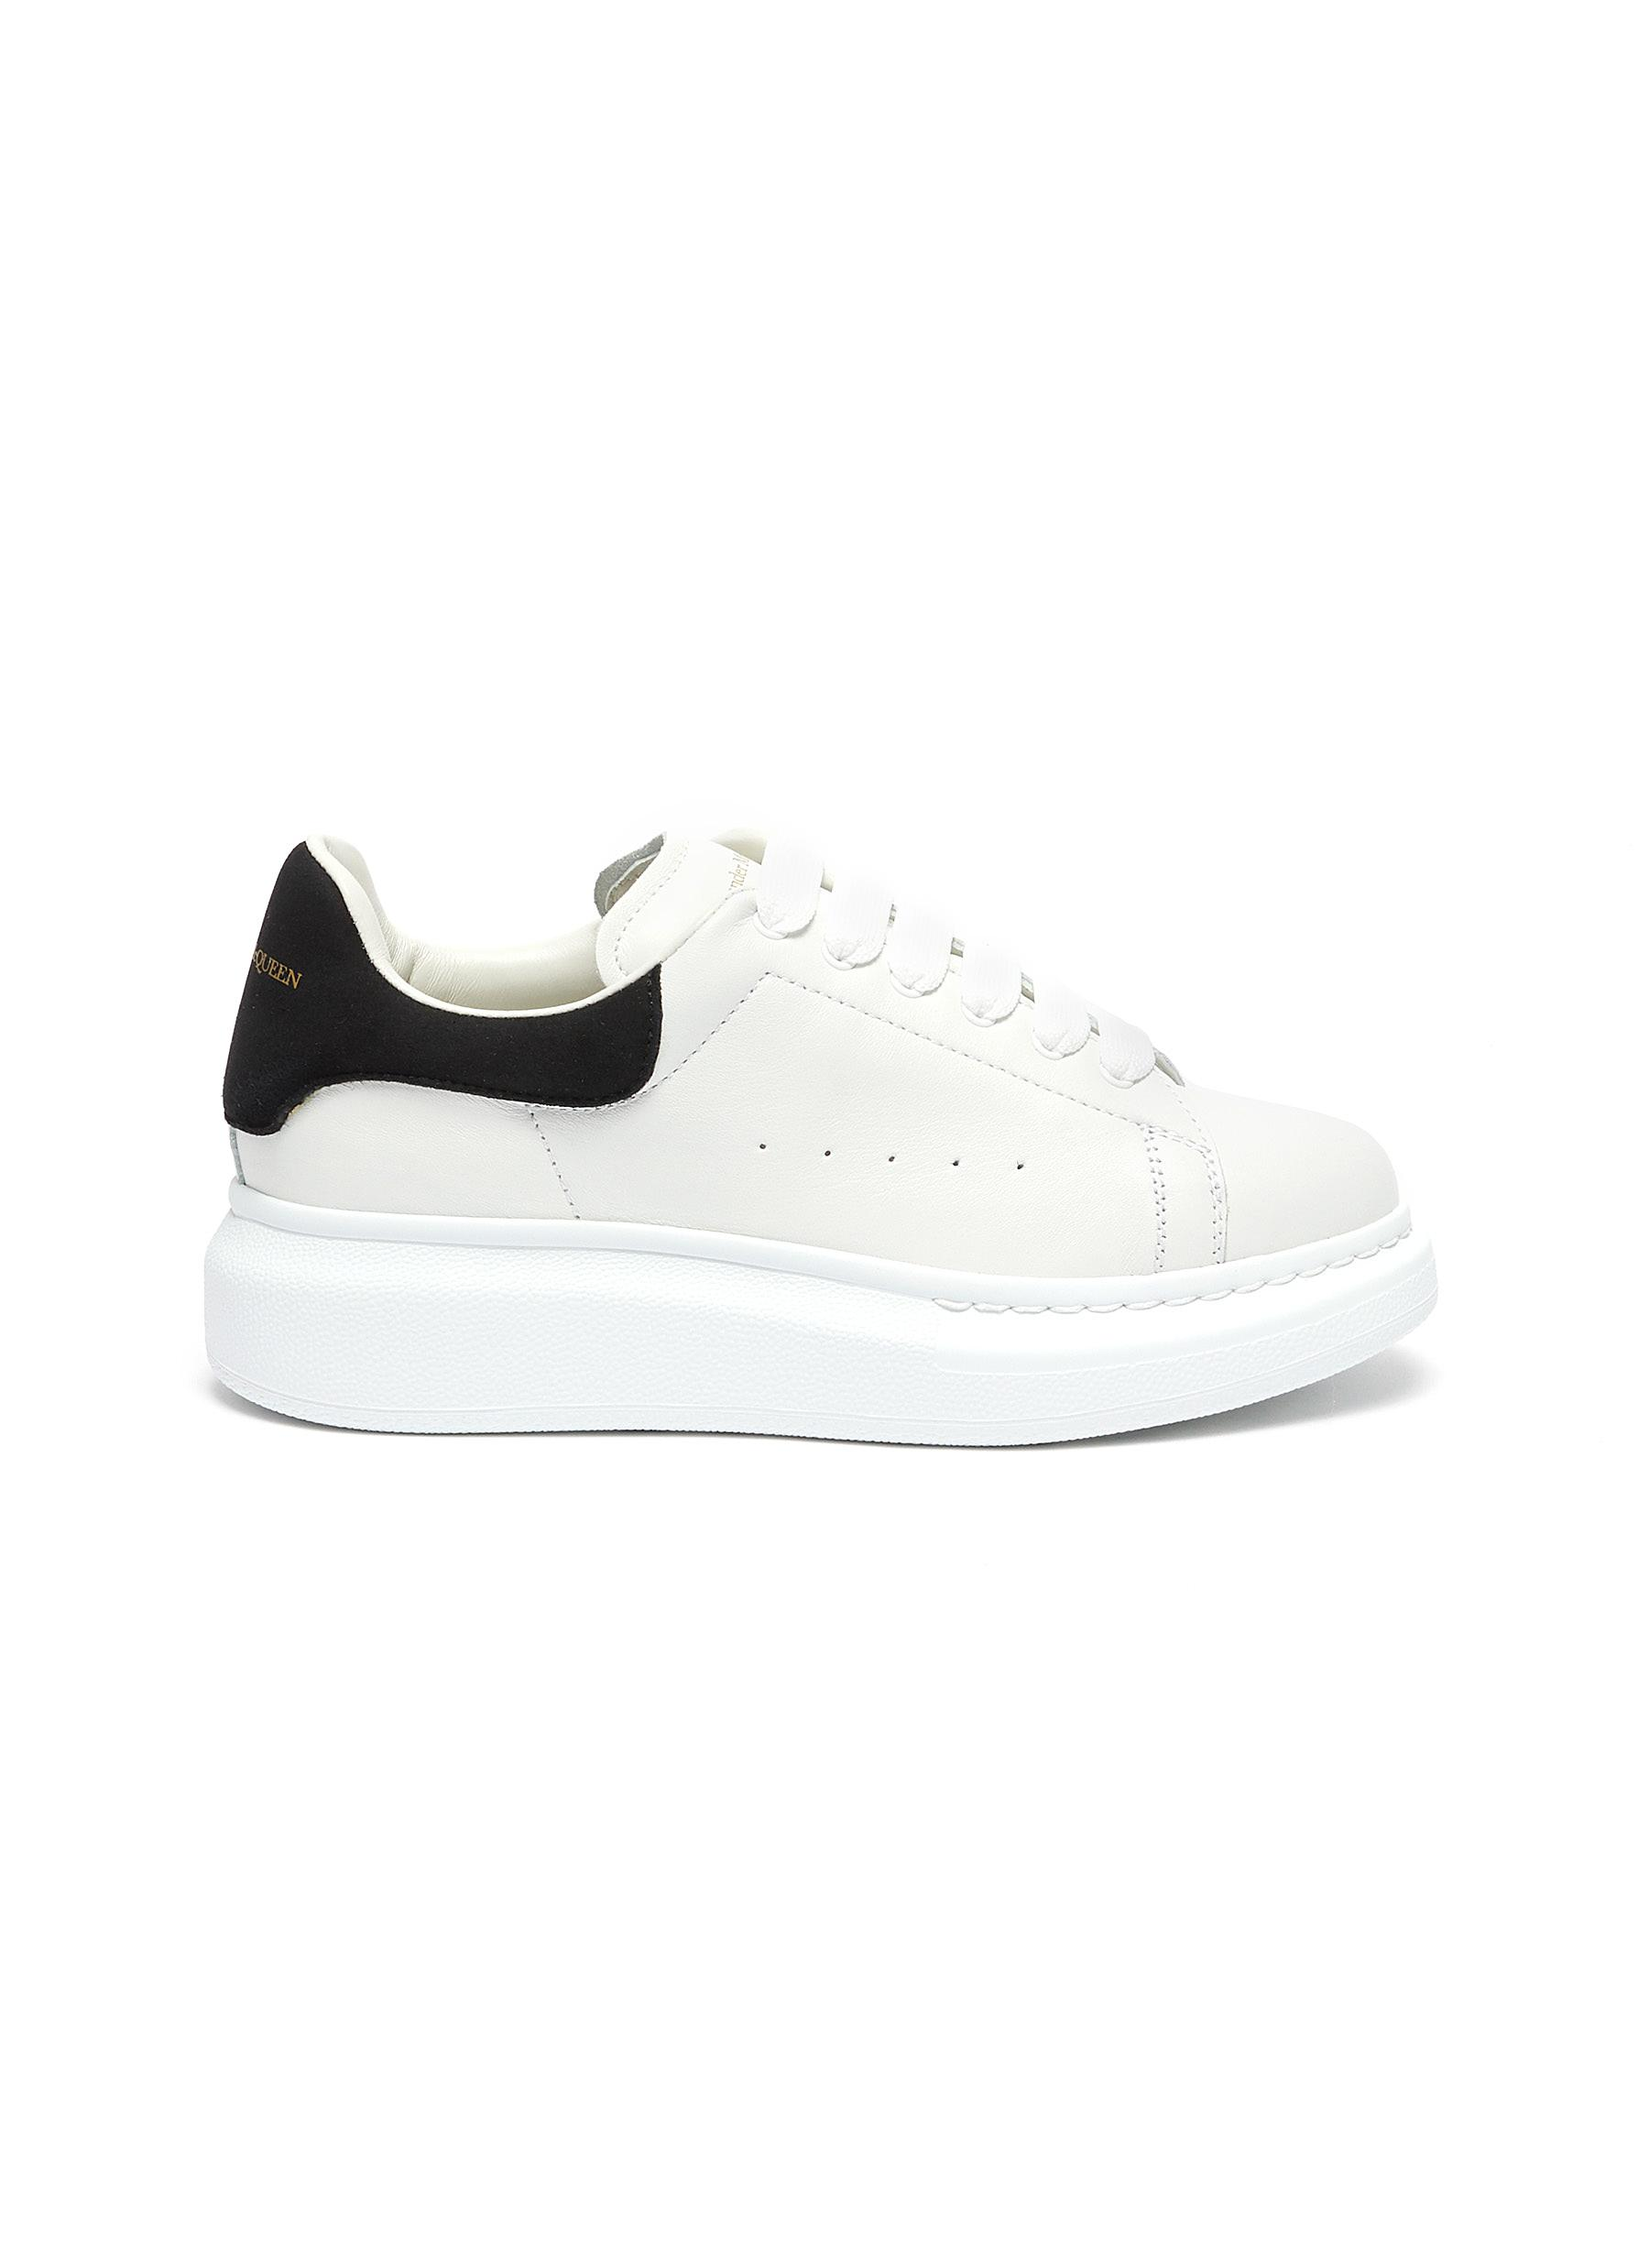 'Molly' contrast heel tab oversized sole Todder and Kids sneakers